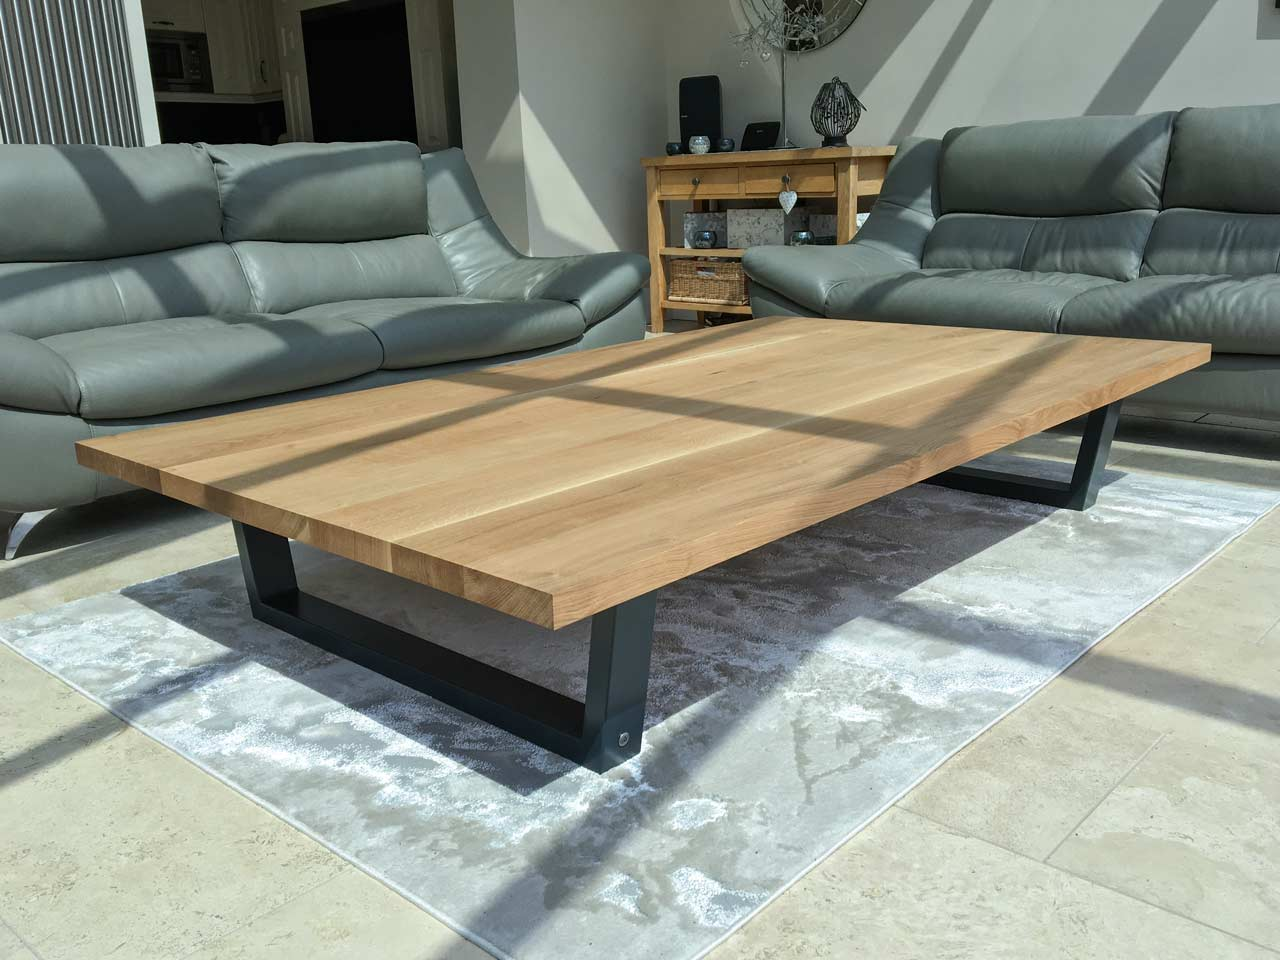 abacus-tables-project-922-pic-1